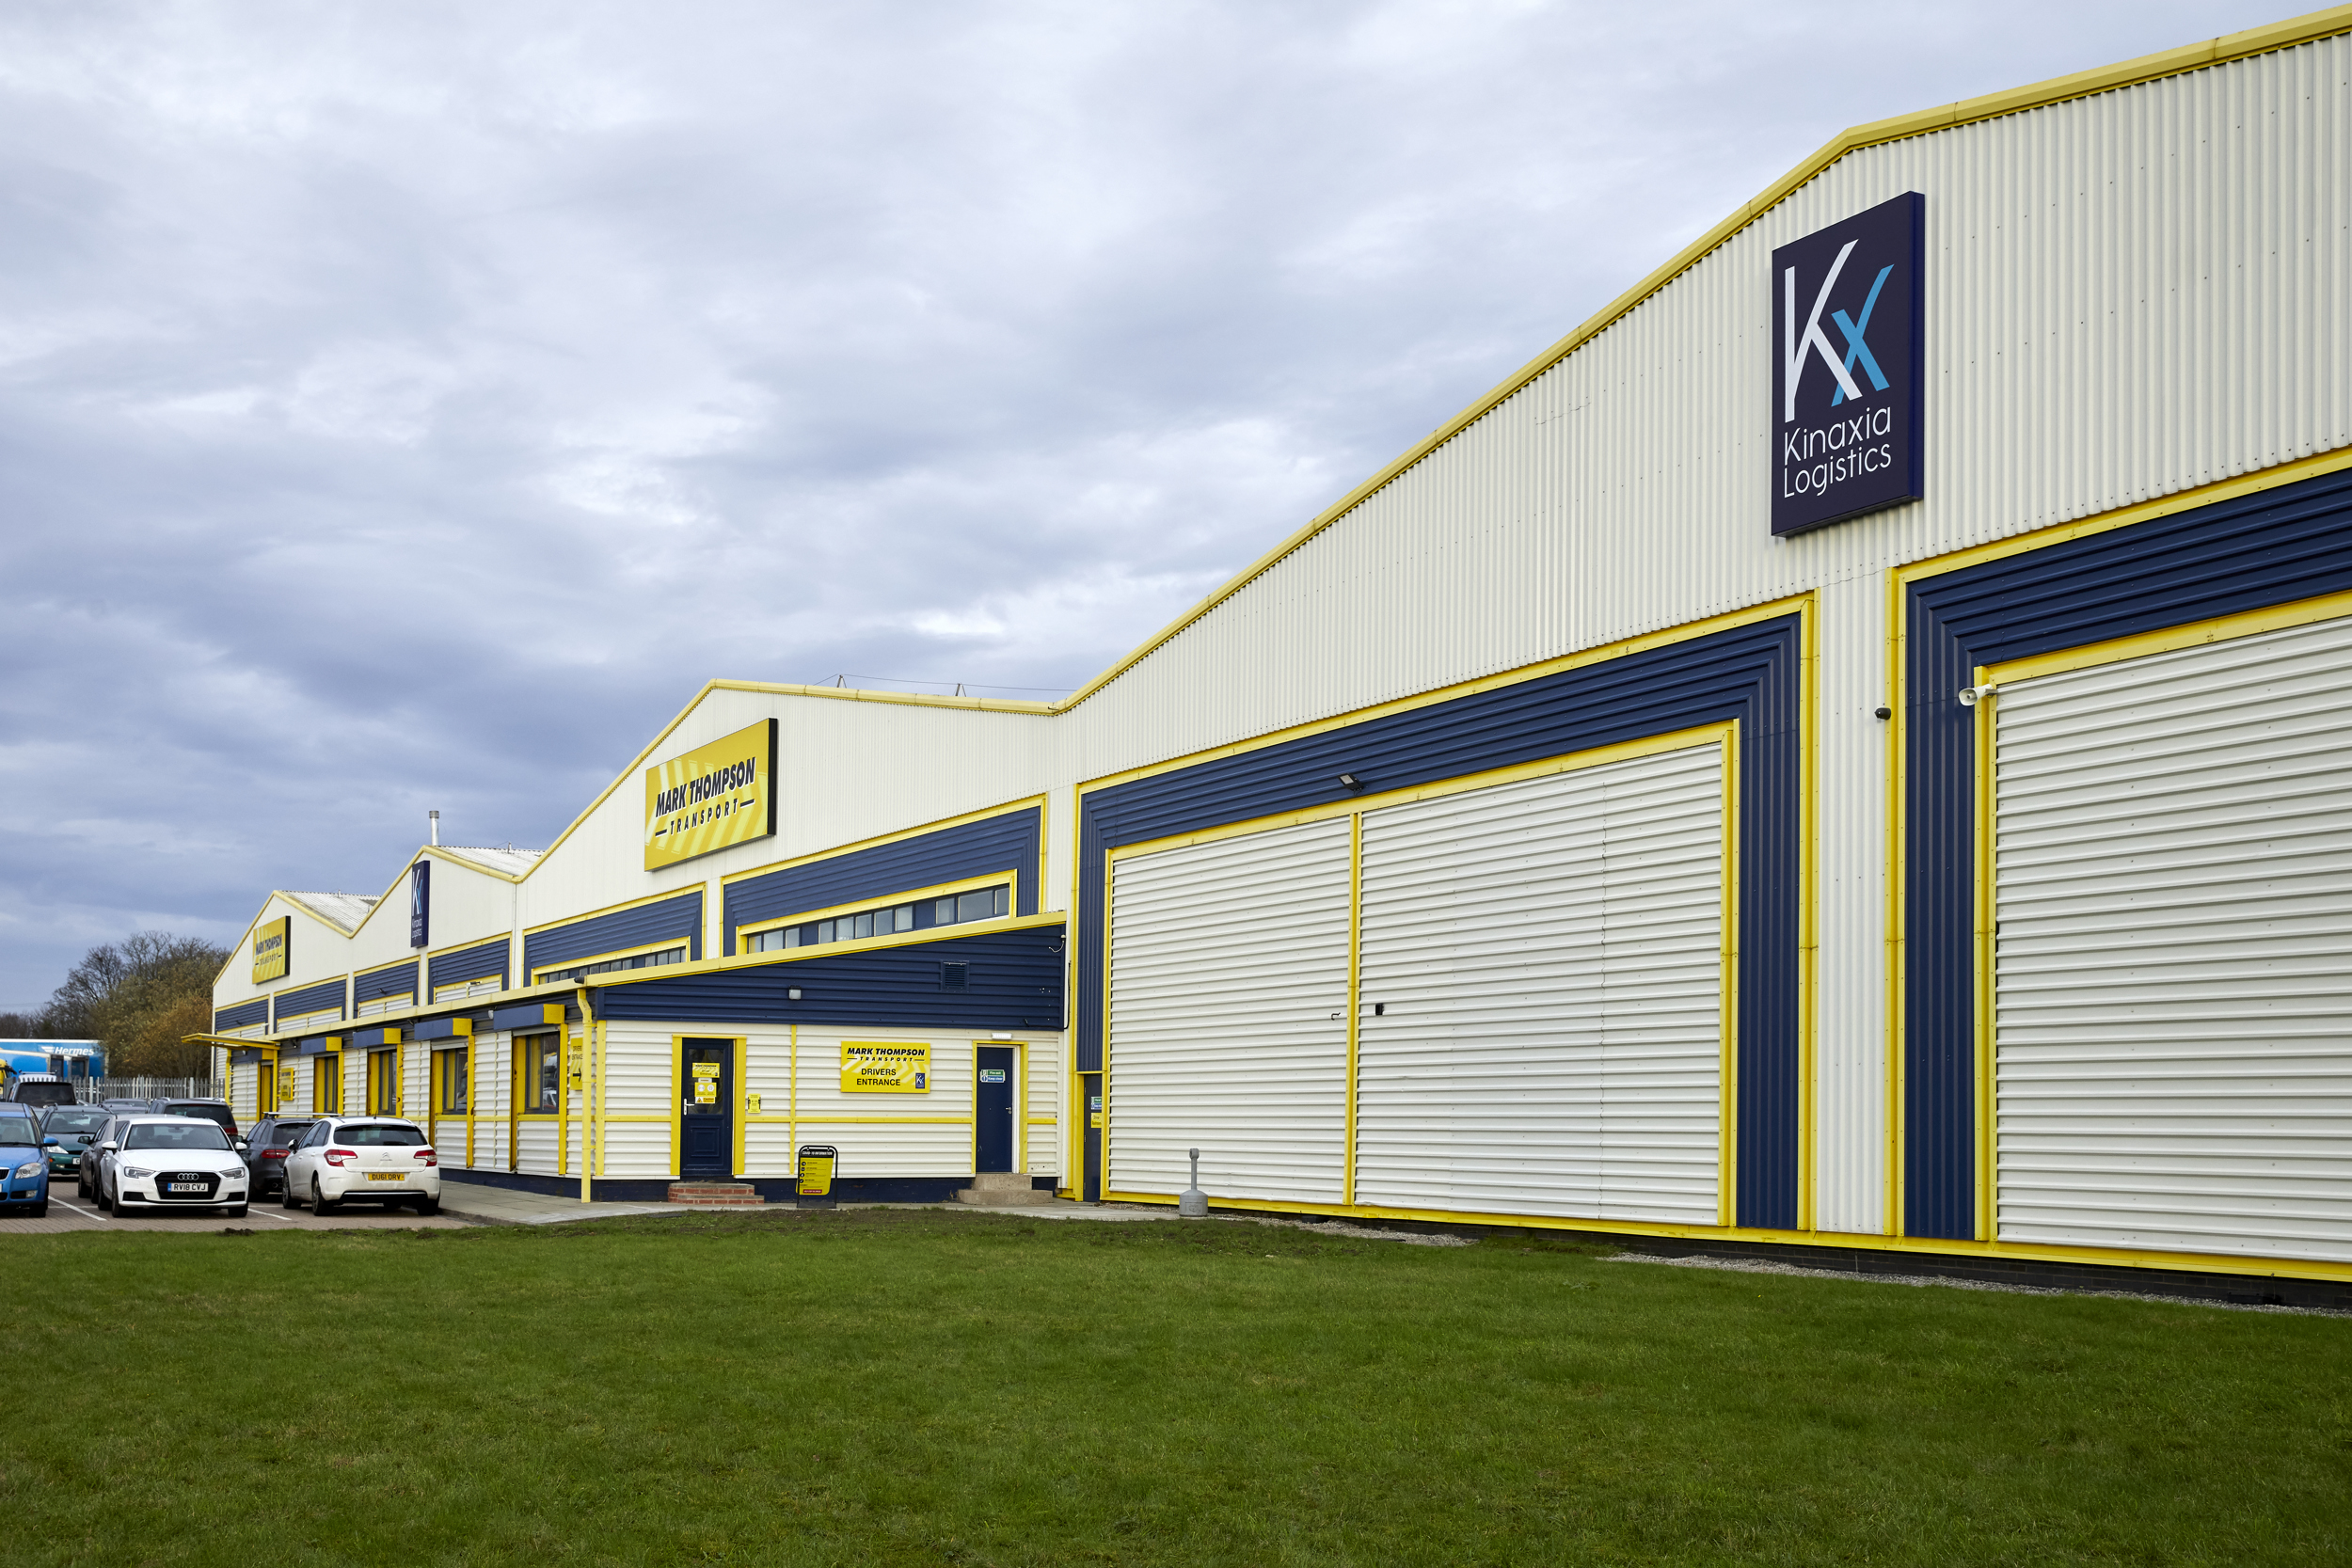 NEW 110,000 SQ FT PREMISES 'A STEP CHANGE' FOR MARK THOMPSON TRANSPORT